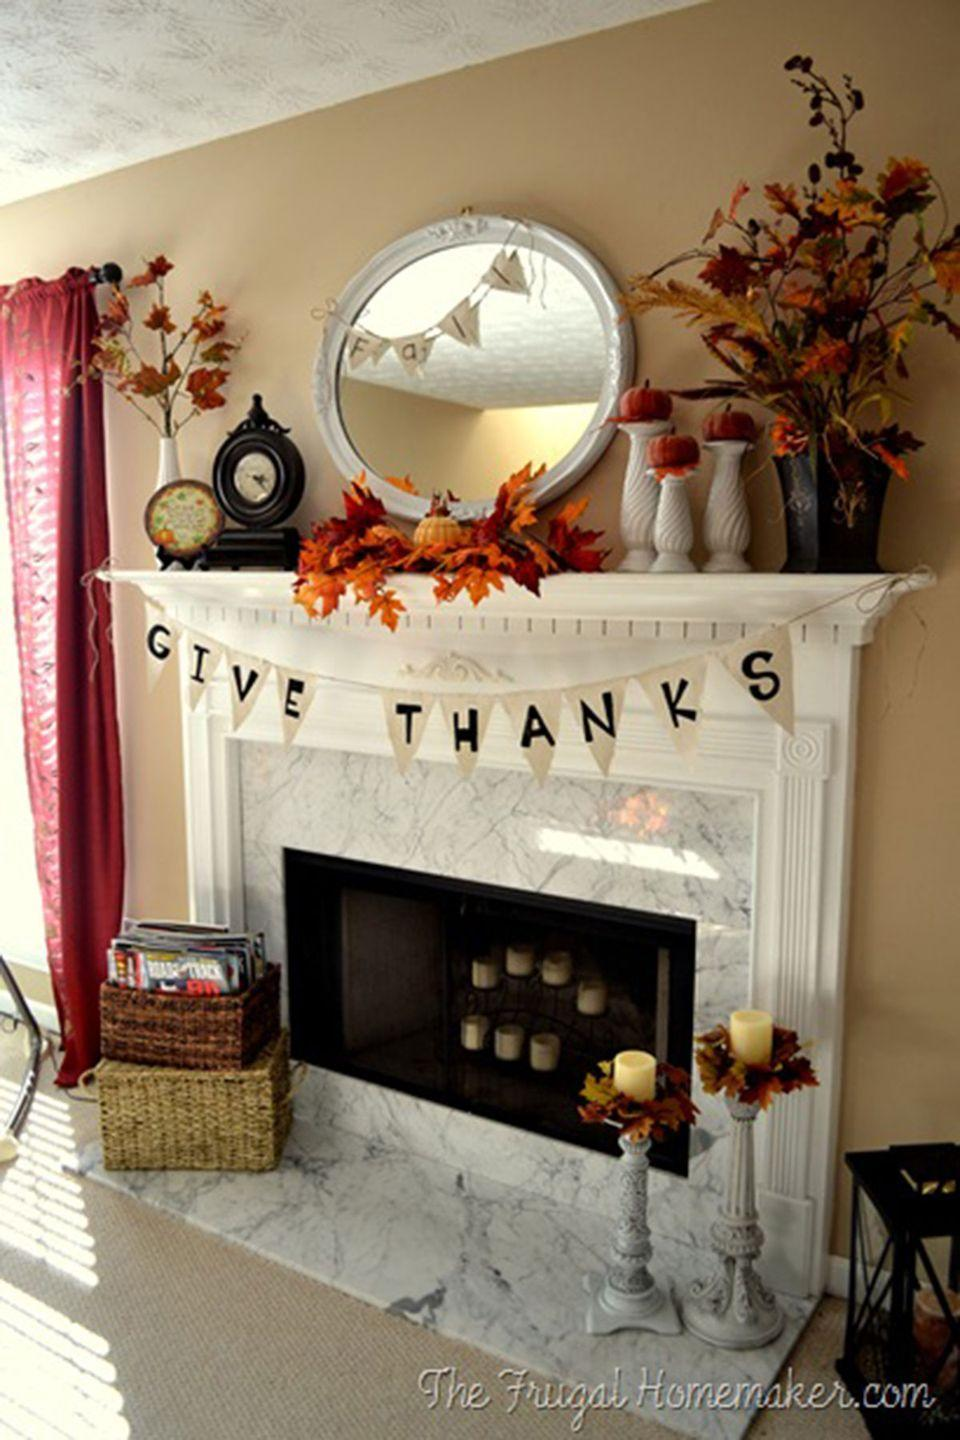 """<p>Remind your dinner guests what the holiday is all about with this simple and sweet fireplace banner.</p><p><strong>Get the tutorial at <a href=""""http://thefrugalhomemaker.com/2011/11/17/thanksgiving-banner-for-the-fireplace/"""" rel=""""nofollow noopener"""" target=""""_blank"""" data-ylk=""""slk:The Frugal Homemaker"""" class=""""link rapid-noclick-resp"""">The Frugal Homemaker</a>. </strong></p><p><strong><a class=""""link rapid-noclick-resp"""" href=""""https://www.amazon.com/Muslin-Fabric-Natural-Cotton-Inches/dp/B01AVOIB14/ref=pd_sbs_201_2?tag=syn-yahoo-20&ascsubtag=%5Bartid%7C10050.g.1371%5Bsrc%7Cyahoo-us"""" rel=""""nofollow noopener"""" target=""""_blank"""" data-ylk=""""slk:SHOP MUSLIN FABRIC"""">SHOP MUSLIN FABRIC</a></strong></p>"""